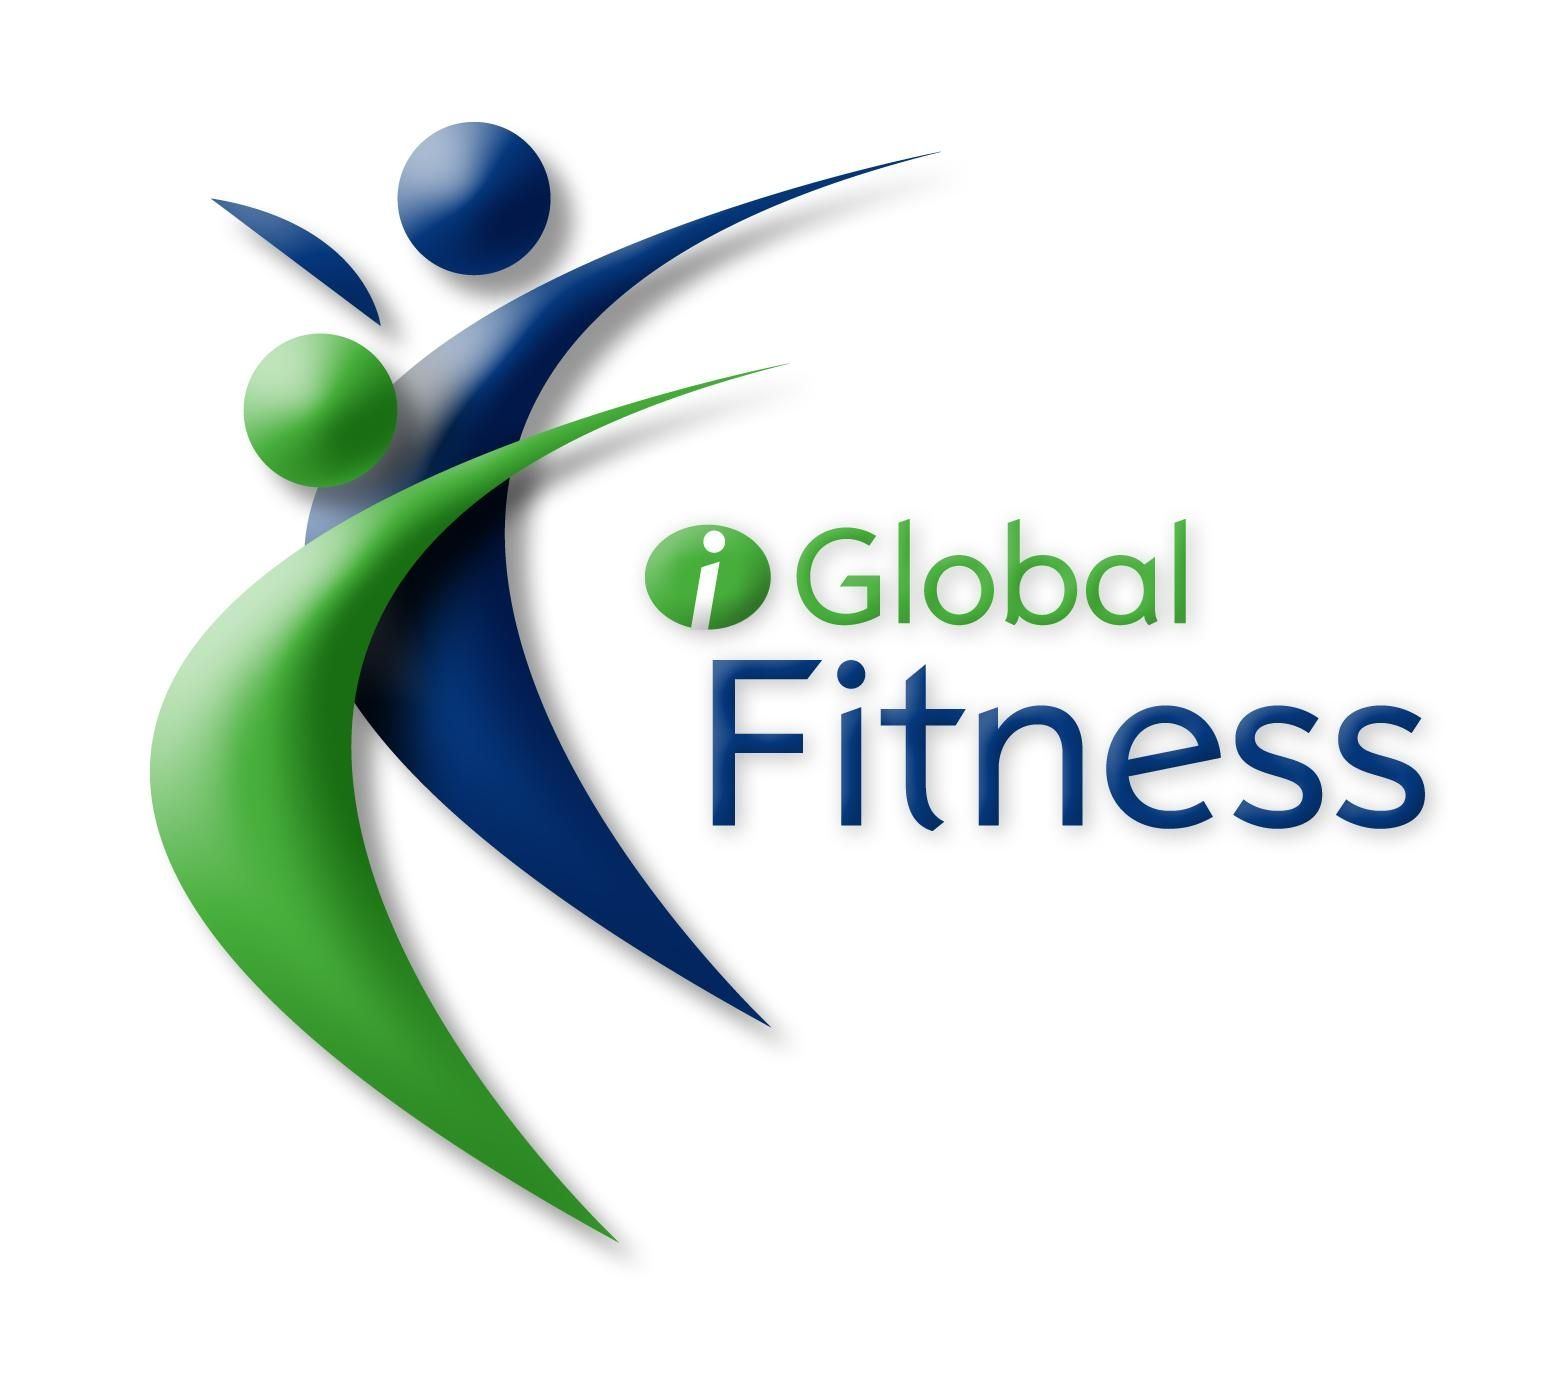 Fitness logos google search fitness brands pinterest logo google fitness logos google search fandeluxe Gallery